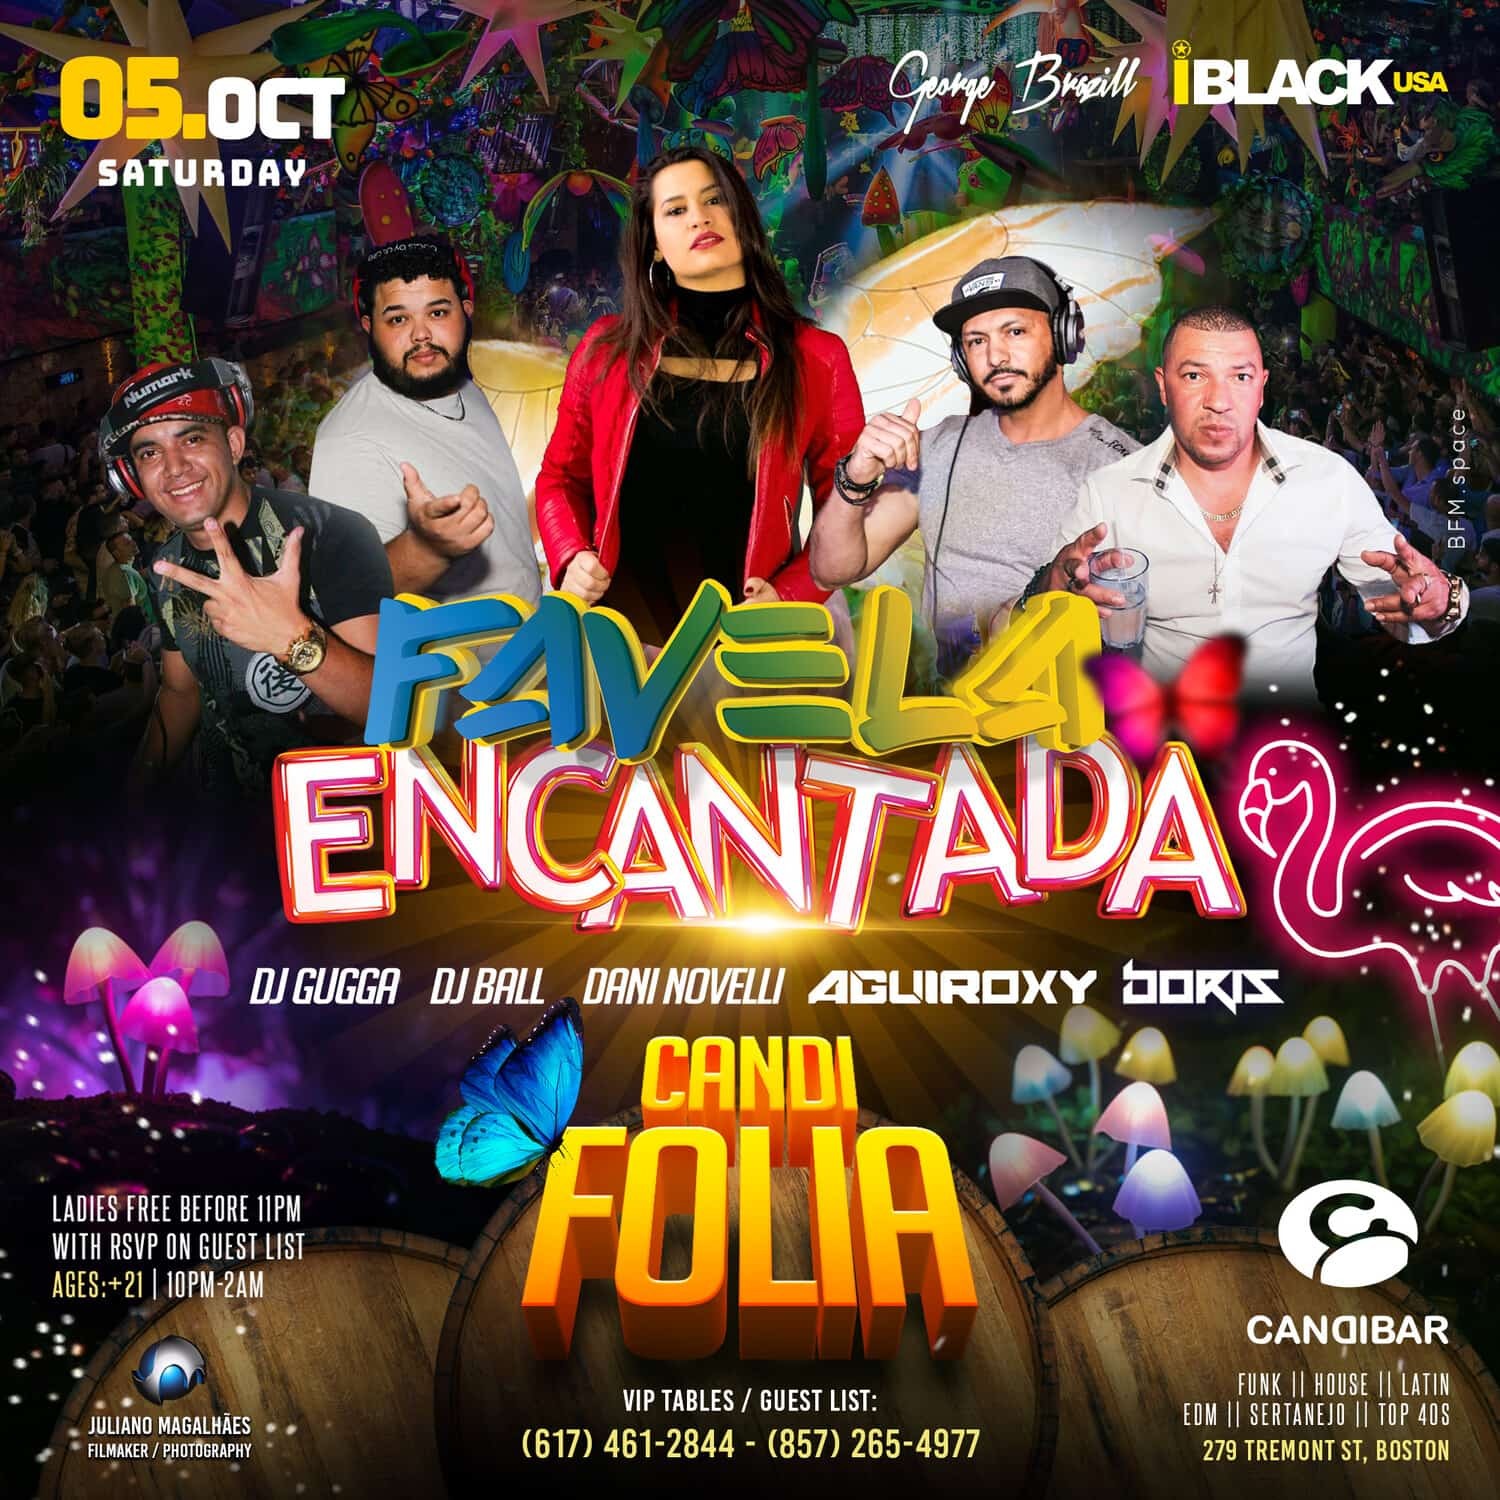 FAVELA ENCANTADA CANDI FOLIA CANDIBAR BOSTON - 05 OUT | iBlackUSA